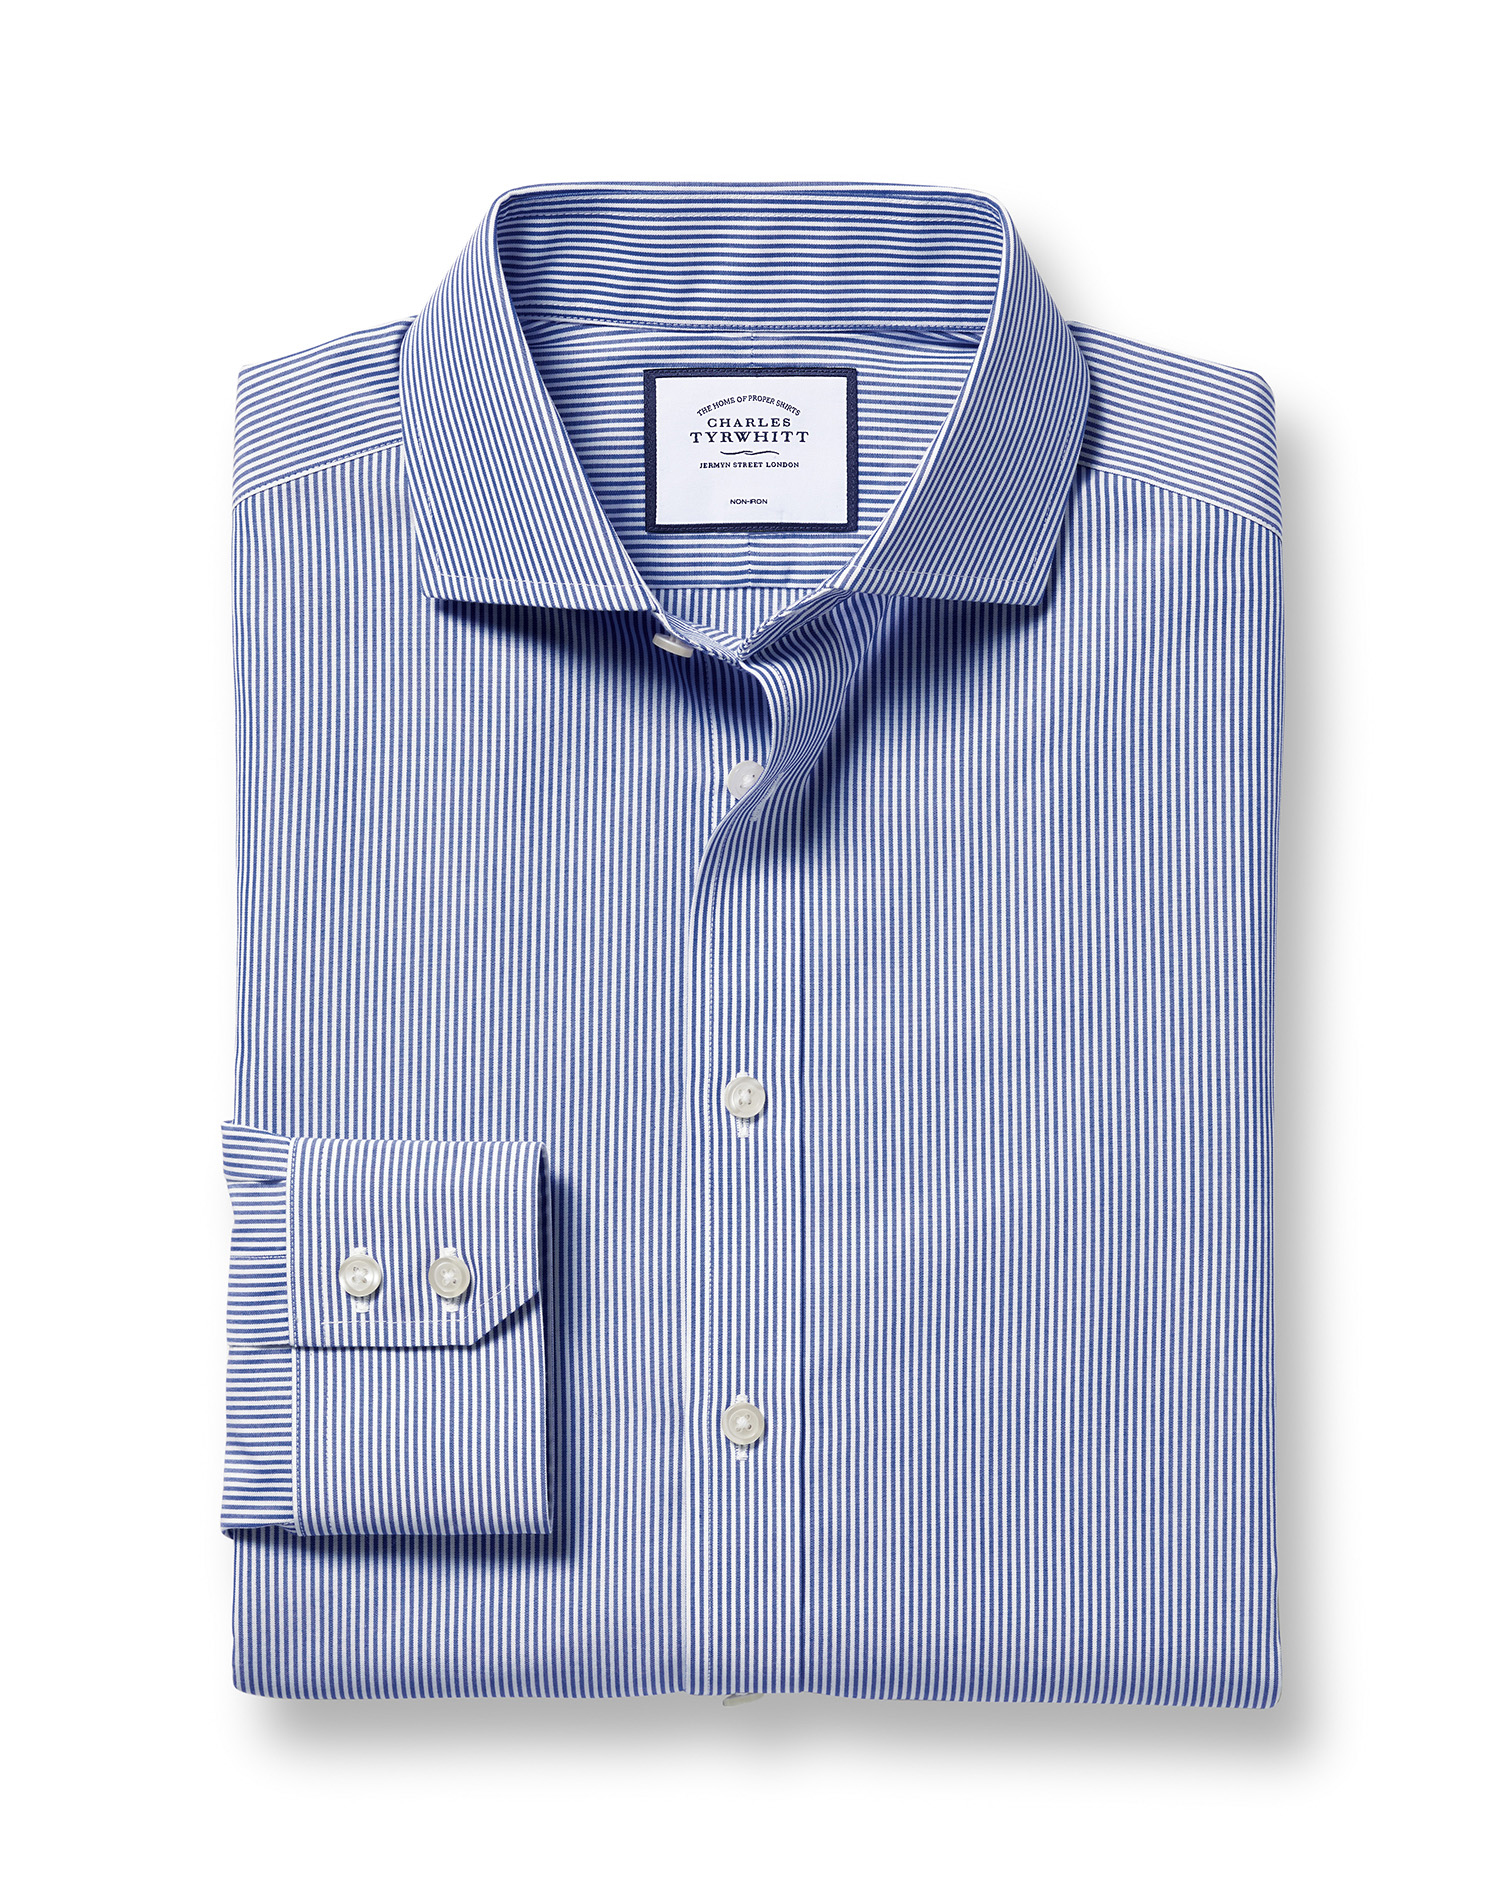 Slim Fit Cutaway Non-Iron Bengal Stripe Navy Blue Cotton Formal Shirt Single Cuff Size 15.5/35 by Ch